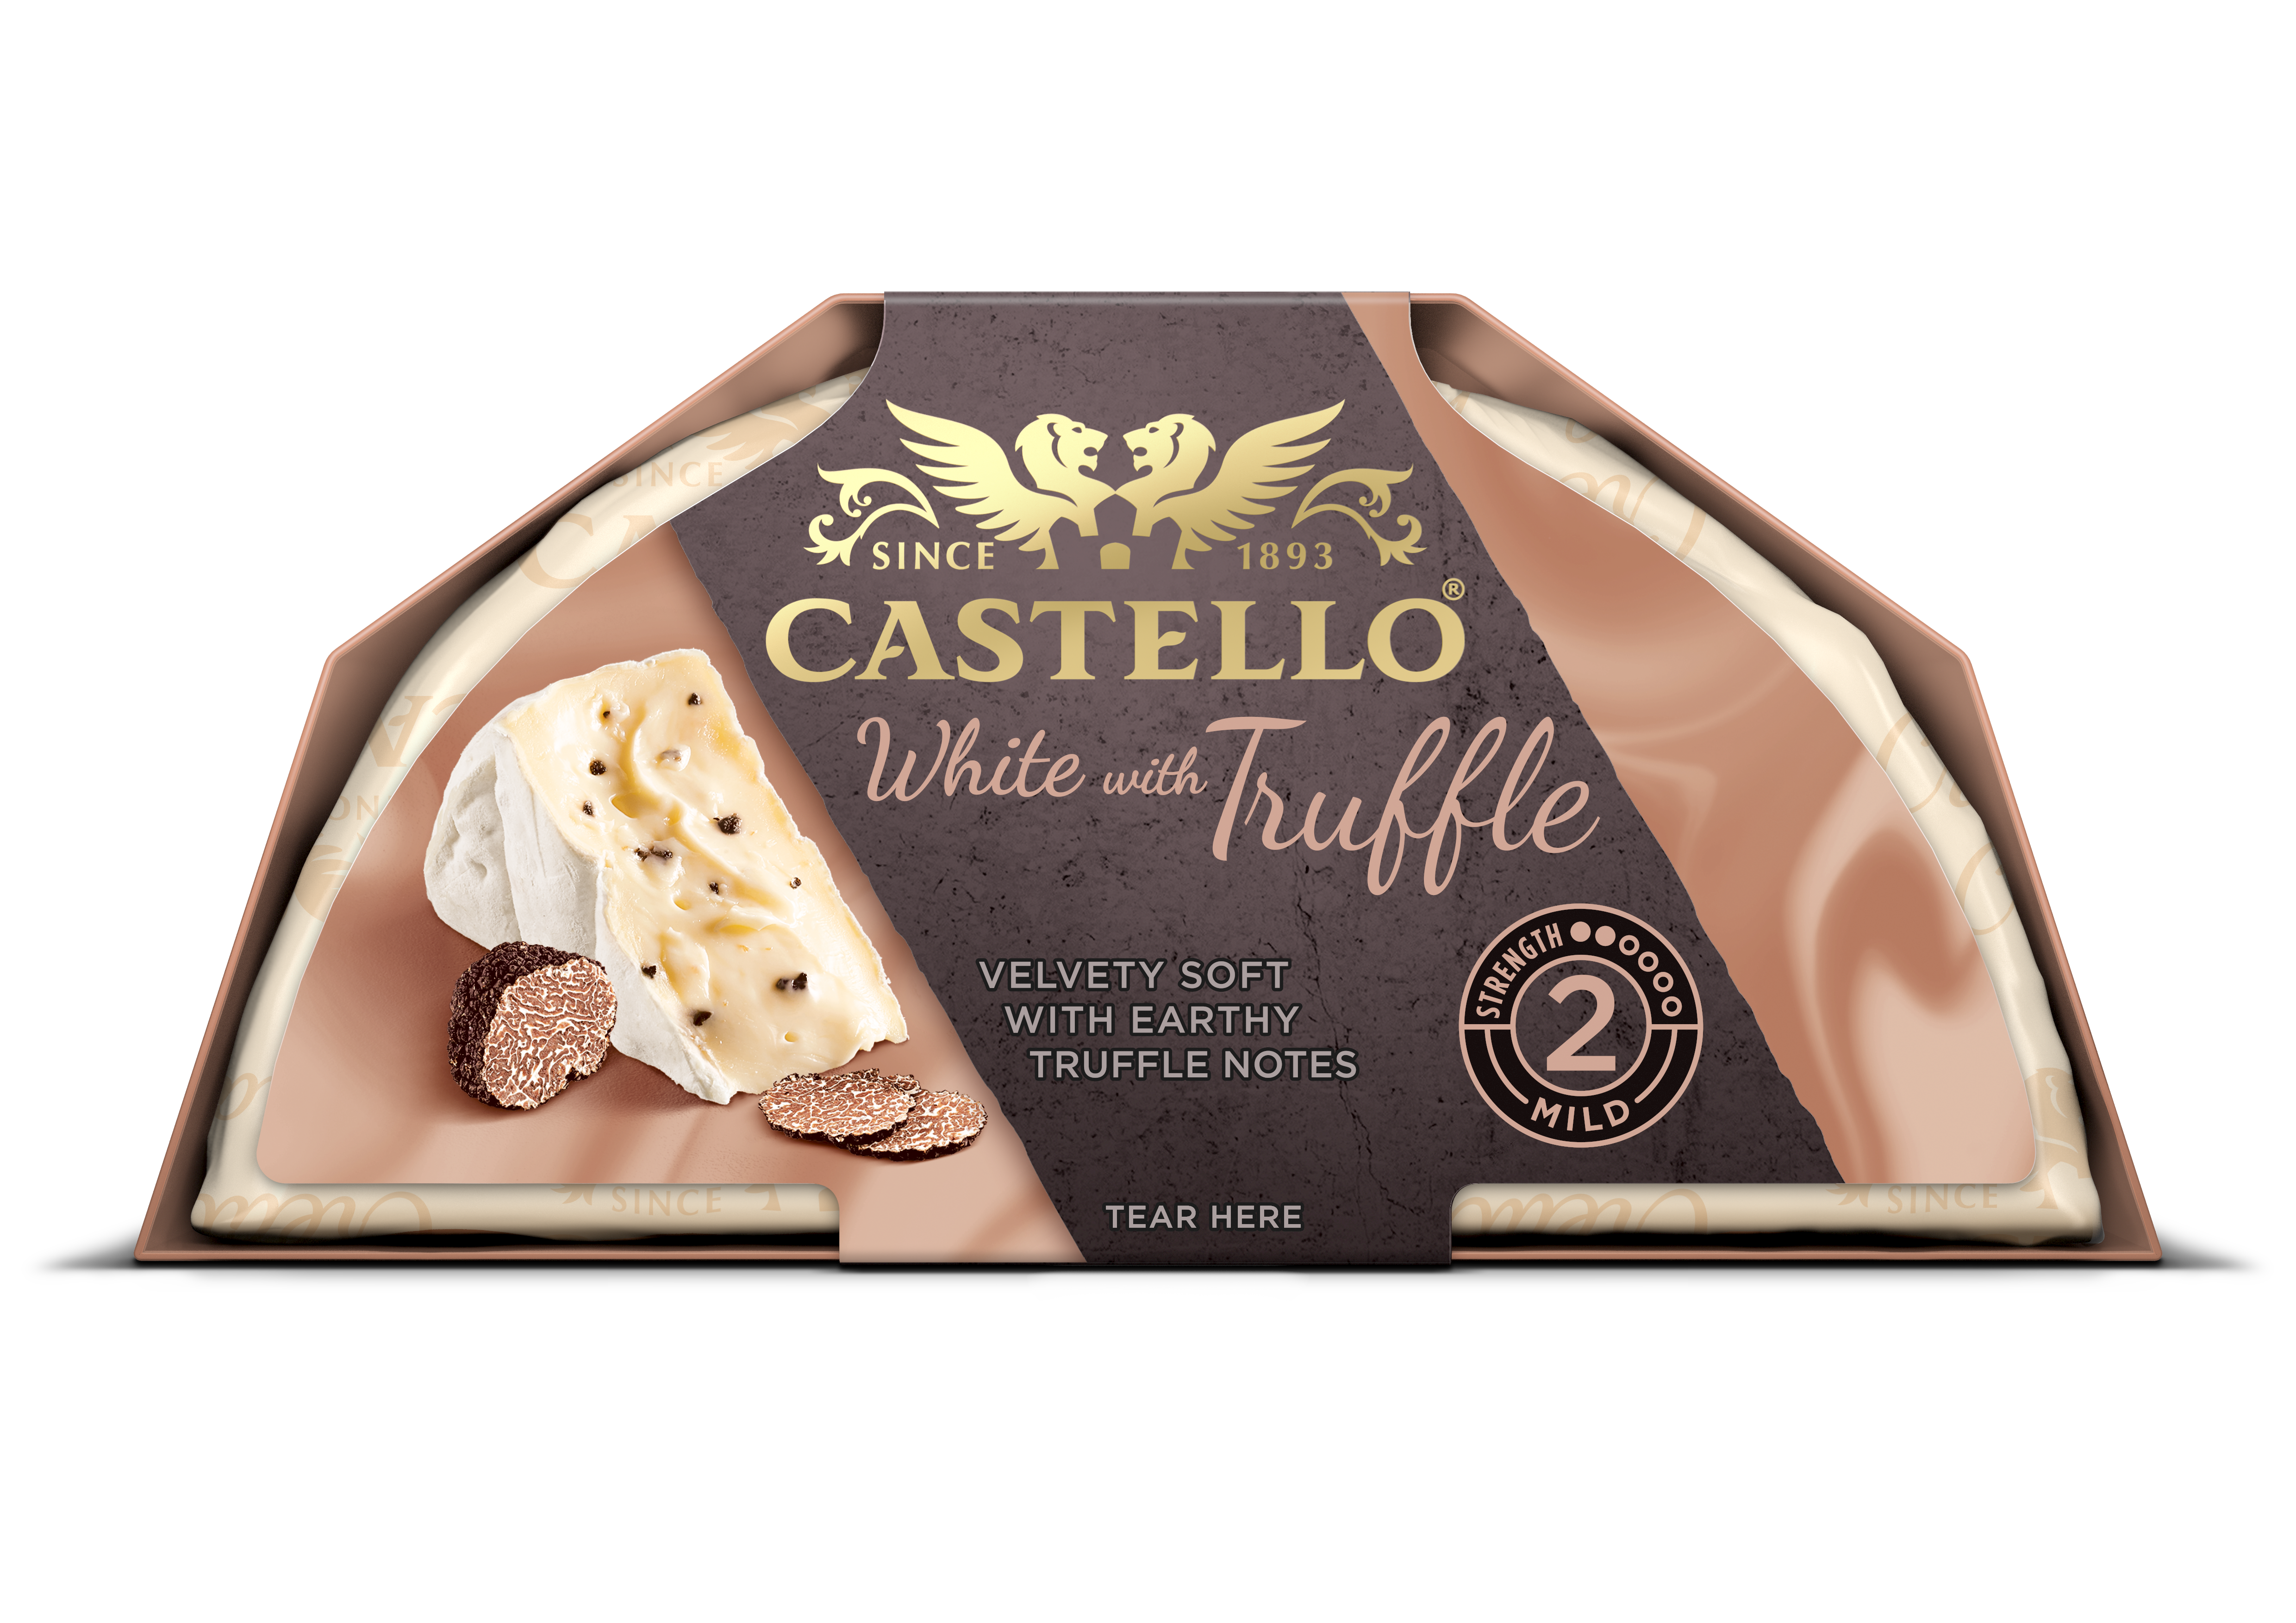 Castello White with Truffle